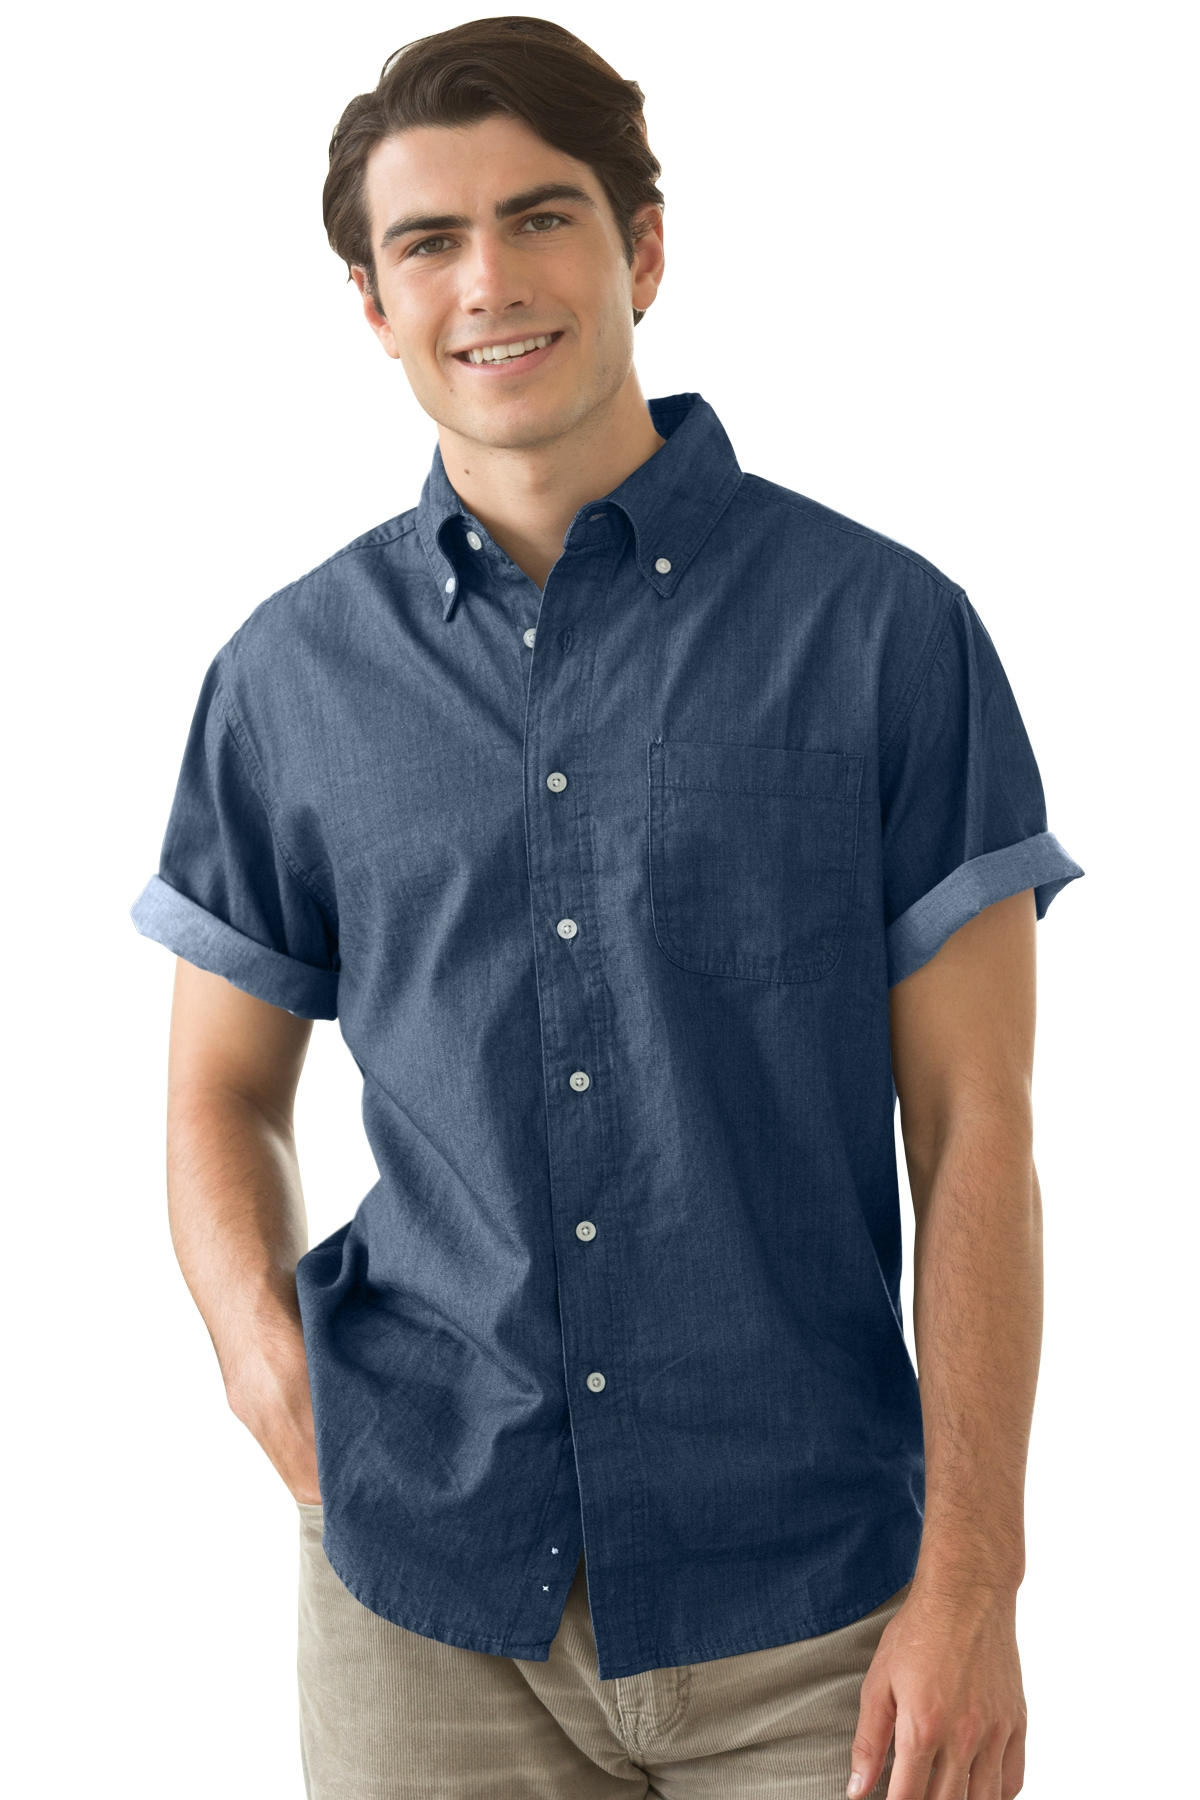 Vantage 1977S - Men's Short-Sleeve Hudson Denim Shirt